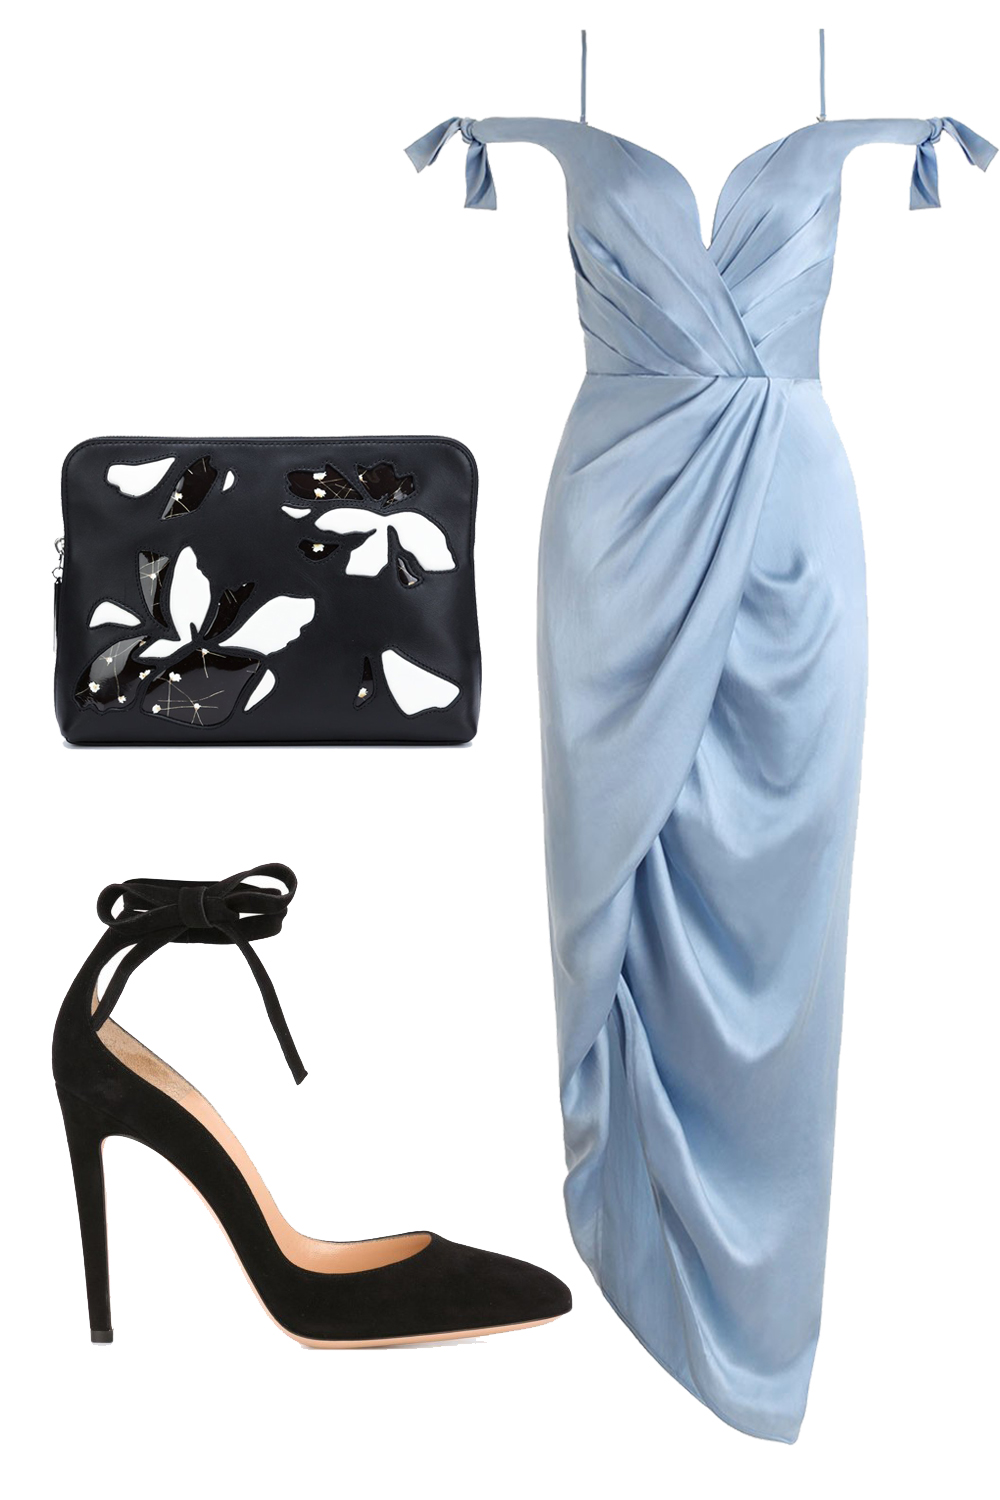 what-to-wear-for-a-winter-wedding-guest-outfit-blue-light-dress-midi-black-bag-clutch-black-shoe-pumps-offshoulder-dinner.jpg